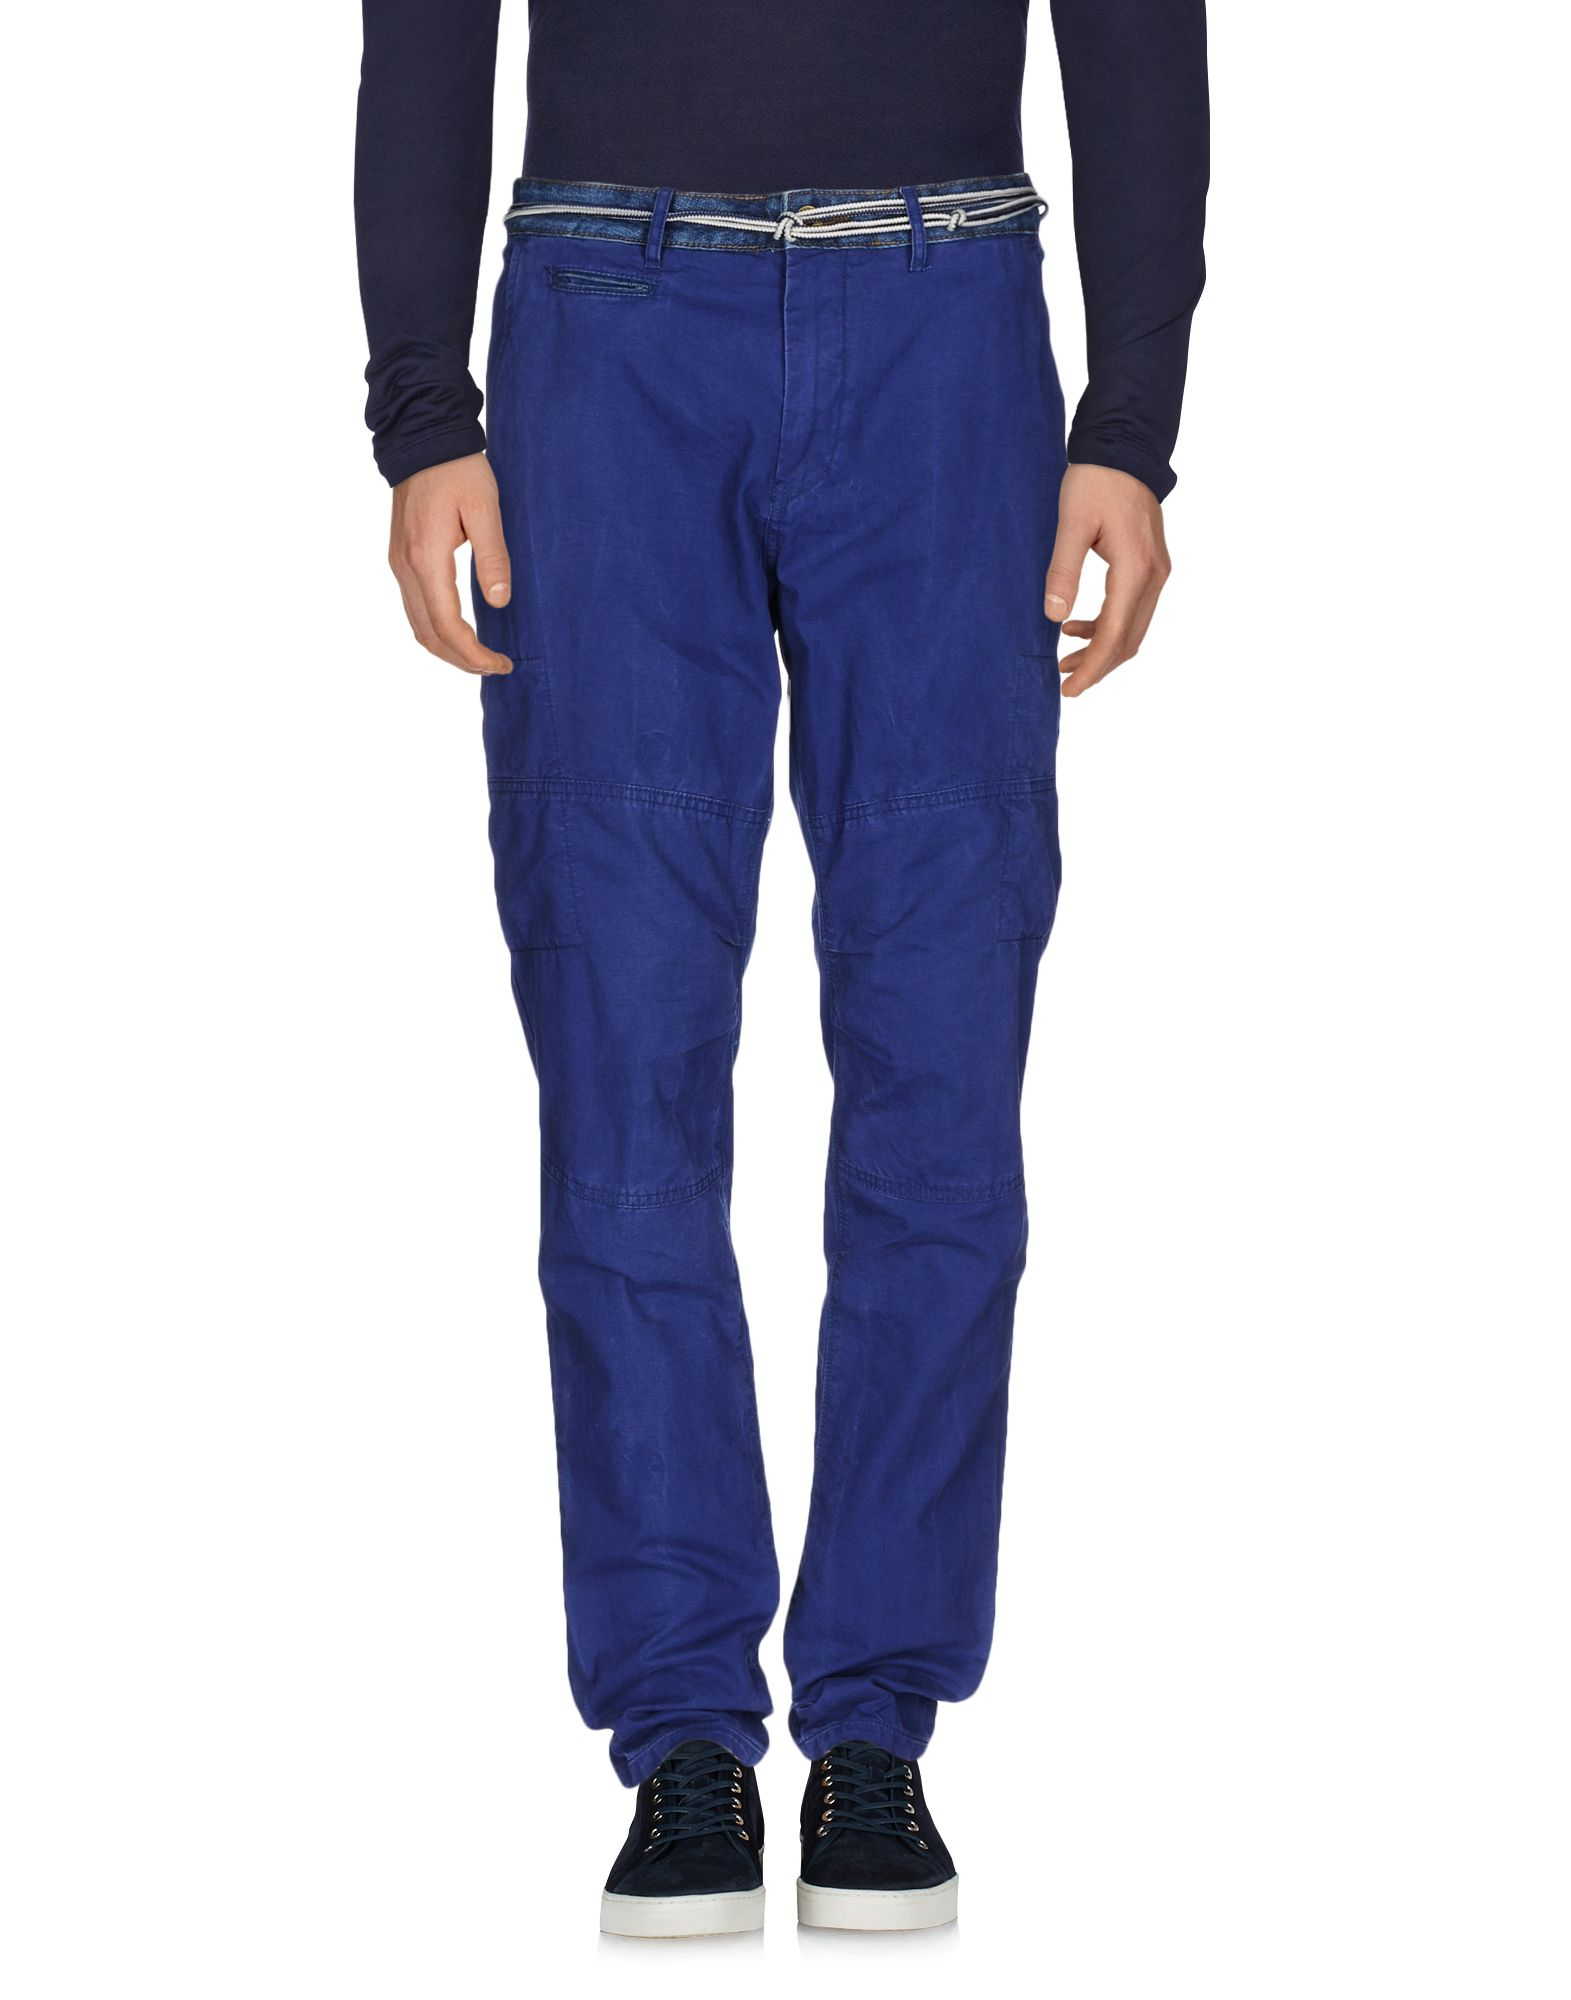 Pantaloni Jeans Scotch & Soda Soda Soda Uomo - 42524971ON 5f4019